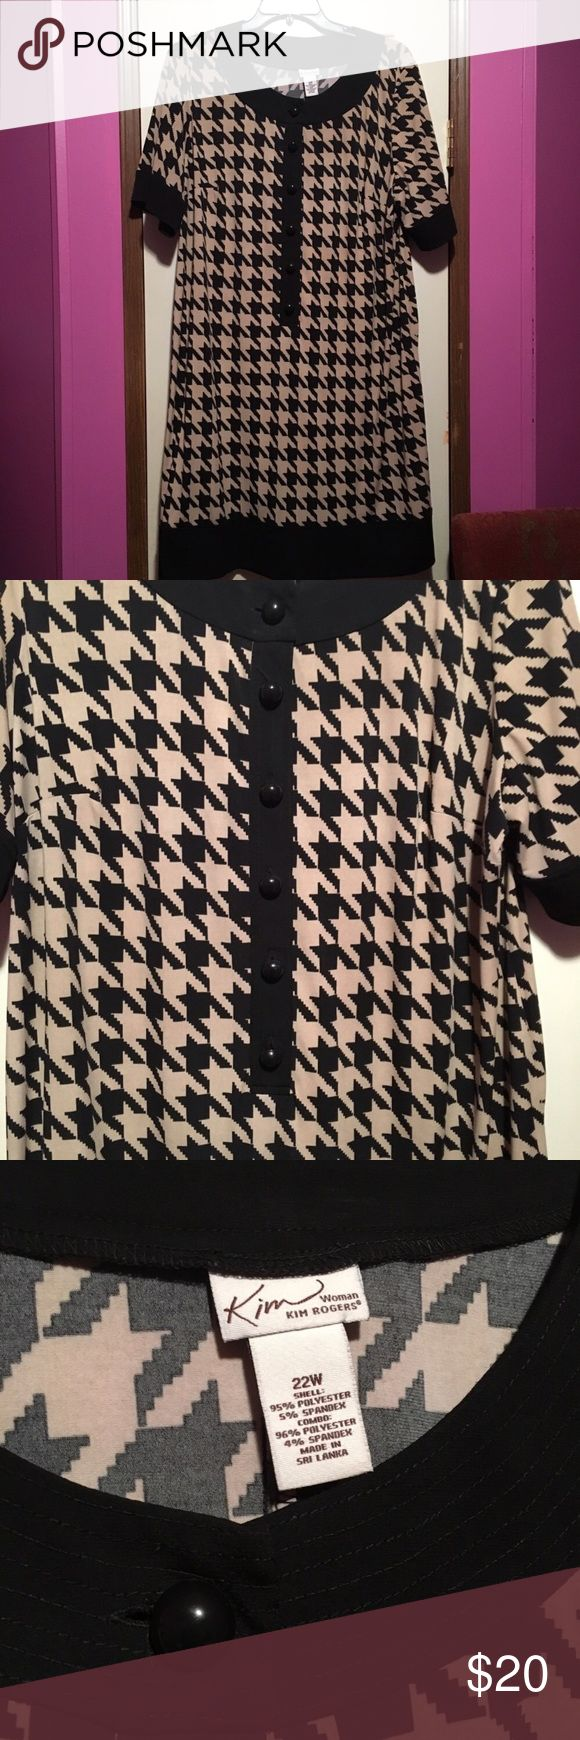 "Kim Rogers Beige and Black Houndstooth Dress Kim Rogers Beige and Black Houndstooth button up dress. Good condition size 22W. Length is 41"", Bust is 52"". Has signs of wear around the collar as pictured. Is a beige/light brown color and black. Price is negotiable and ships next day. Kim Rogers Dresses"